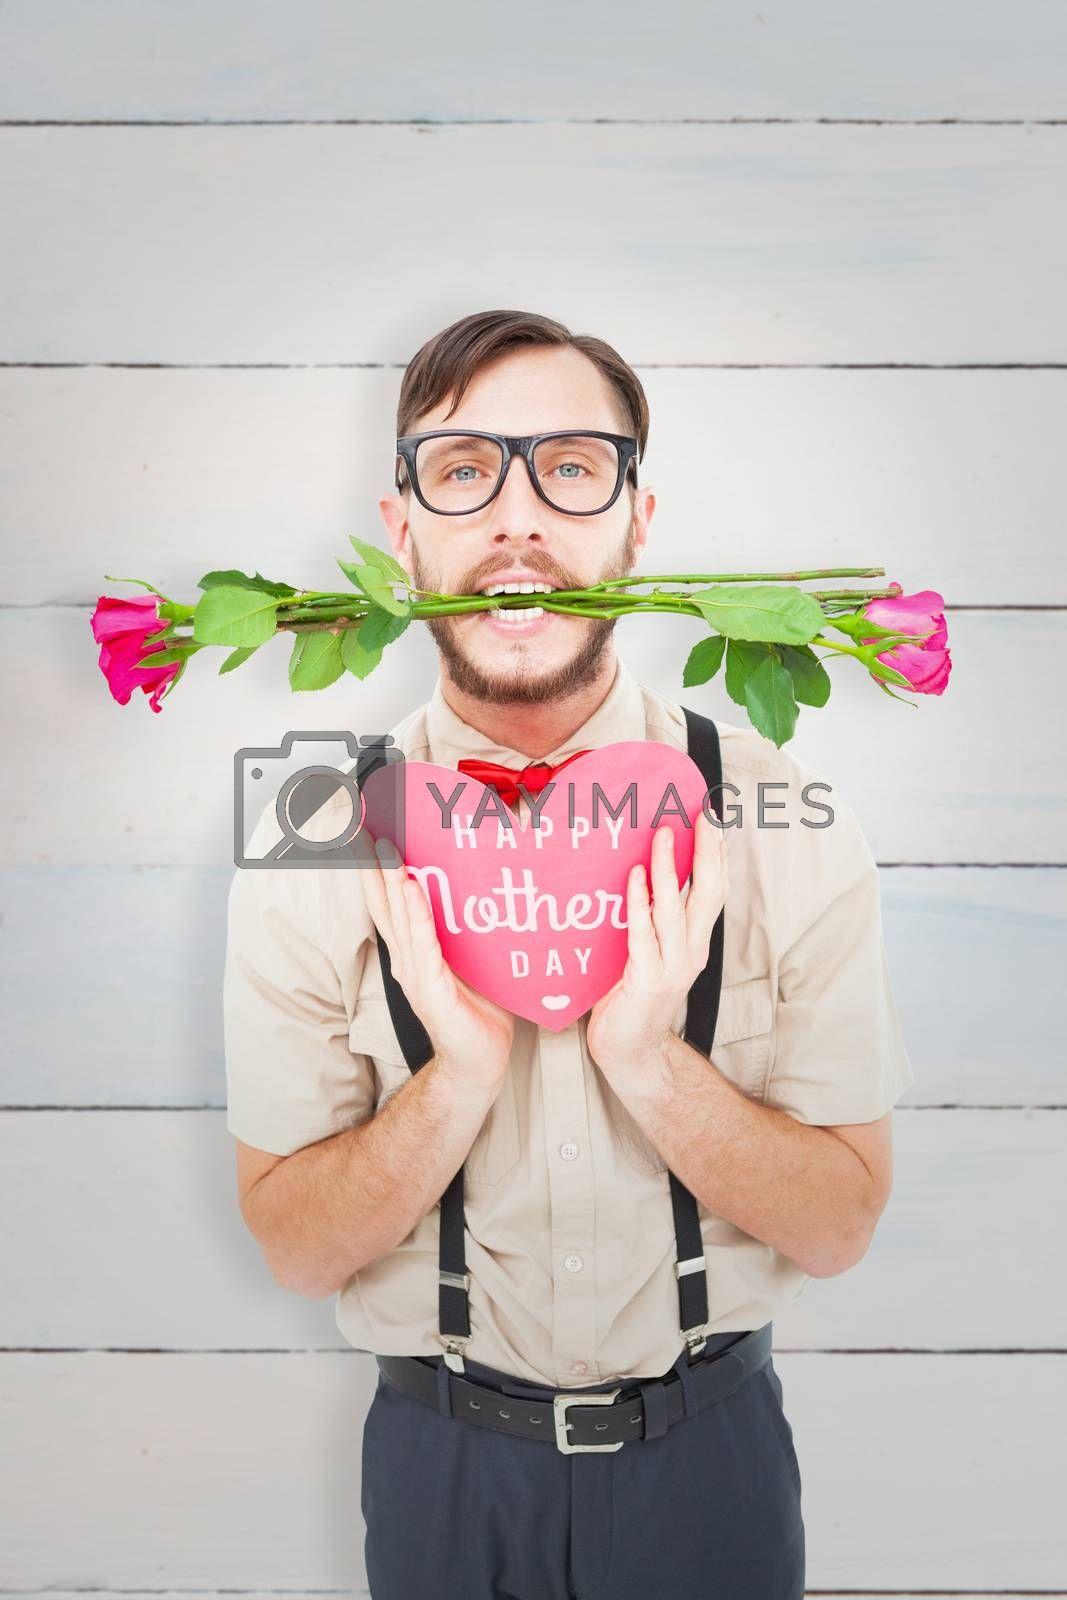 Geeky hipster offering valentines gifts against wooden planks